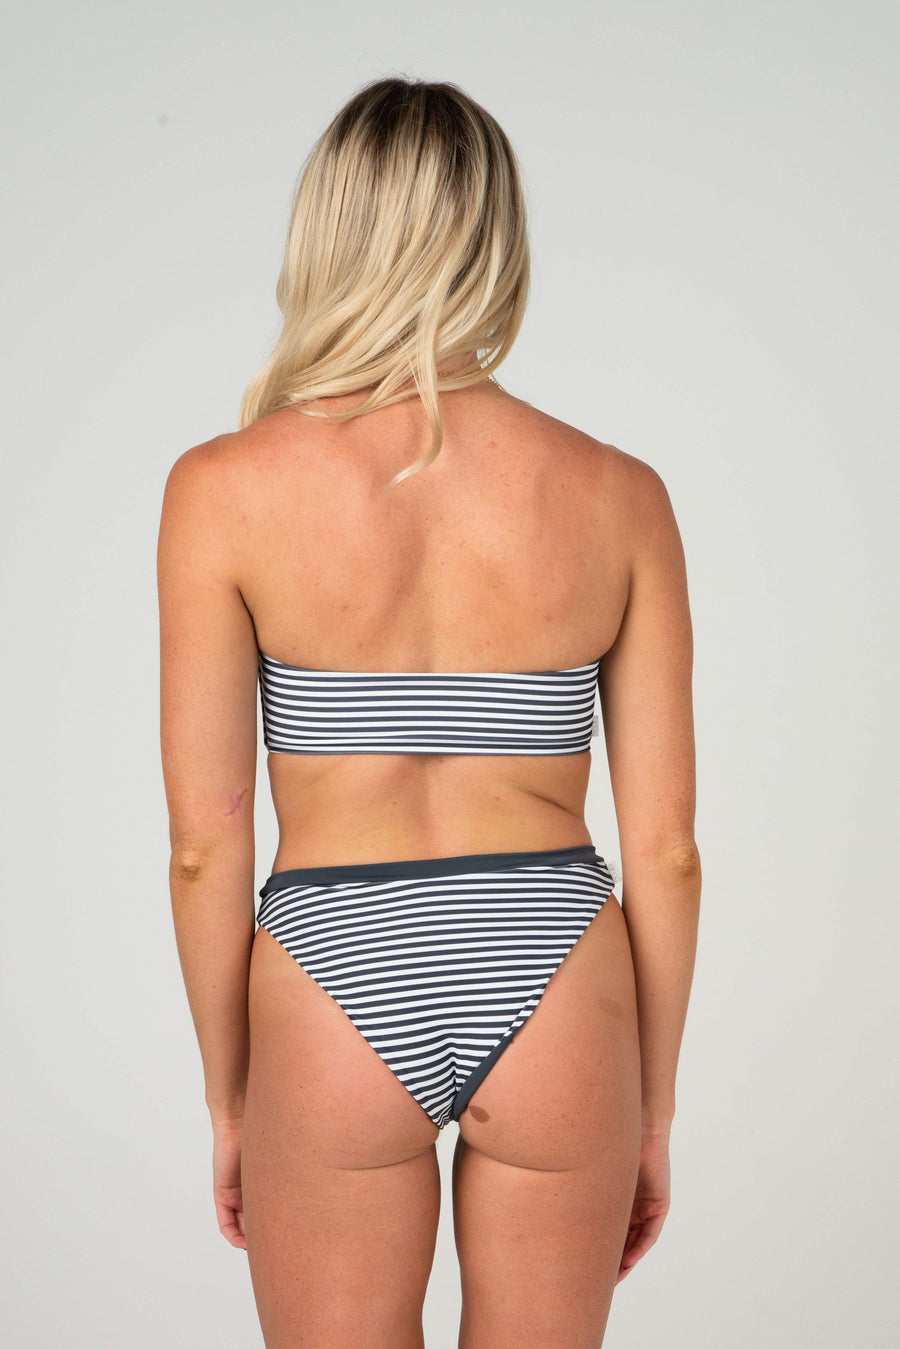 Aloé Swimwear Tops PAROS TOP IN SEA BATH